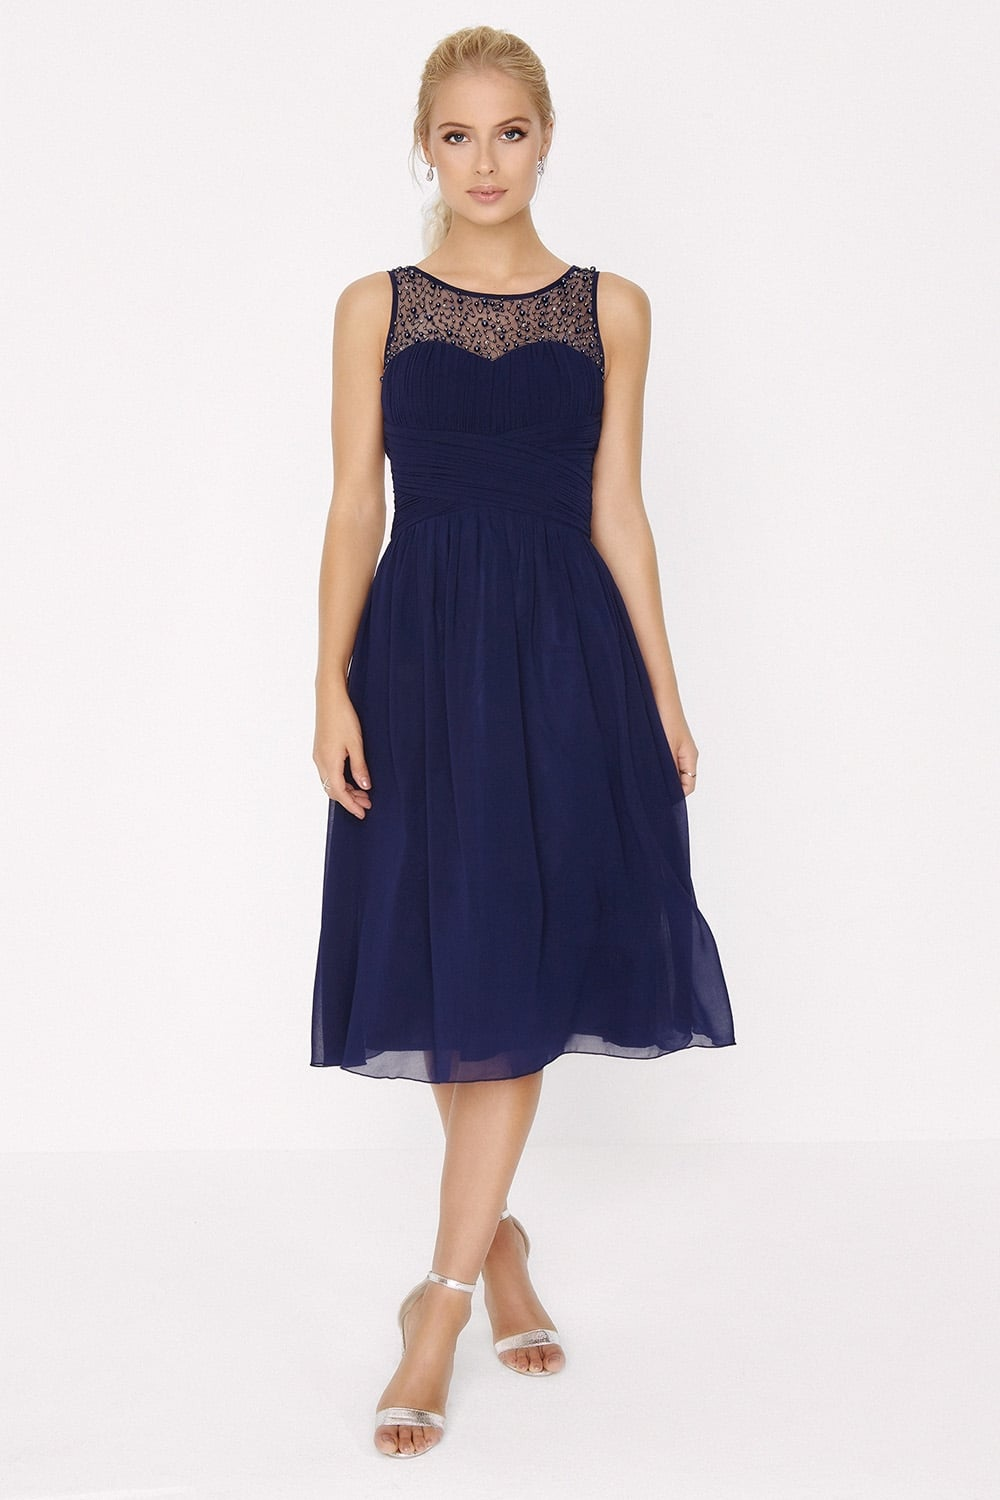 Little Mistress Navy Prom Dress - Little Mistress from ...